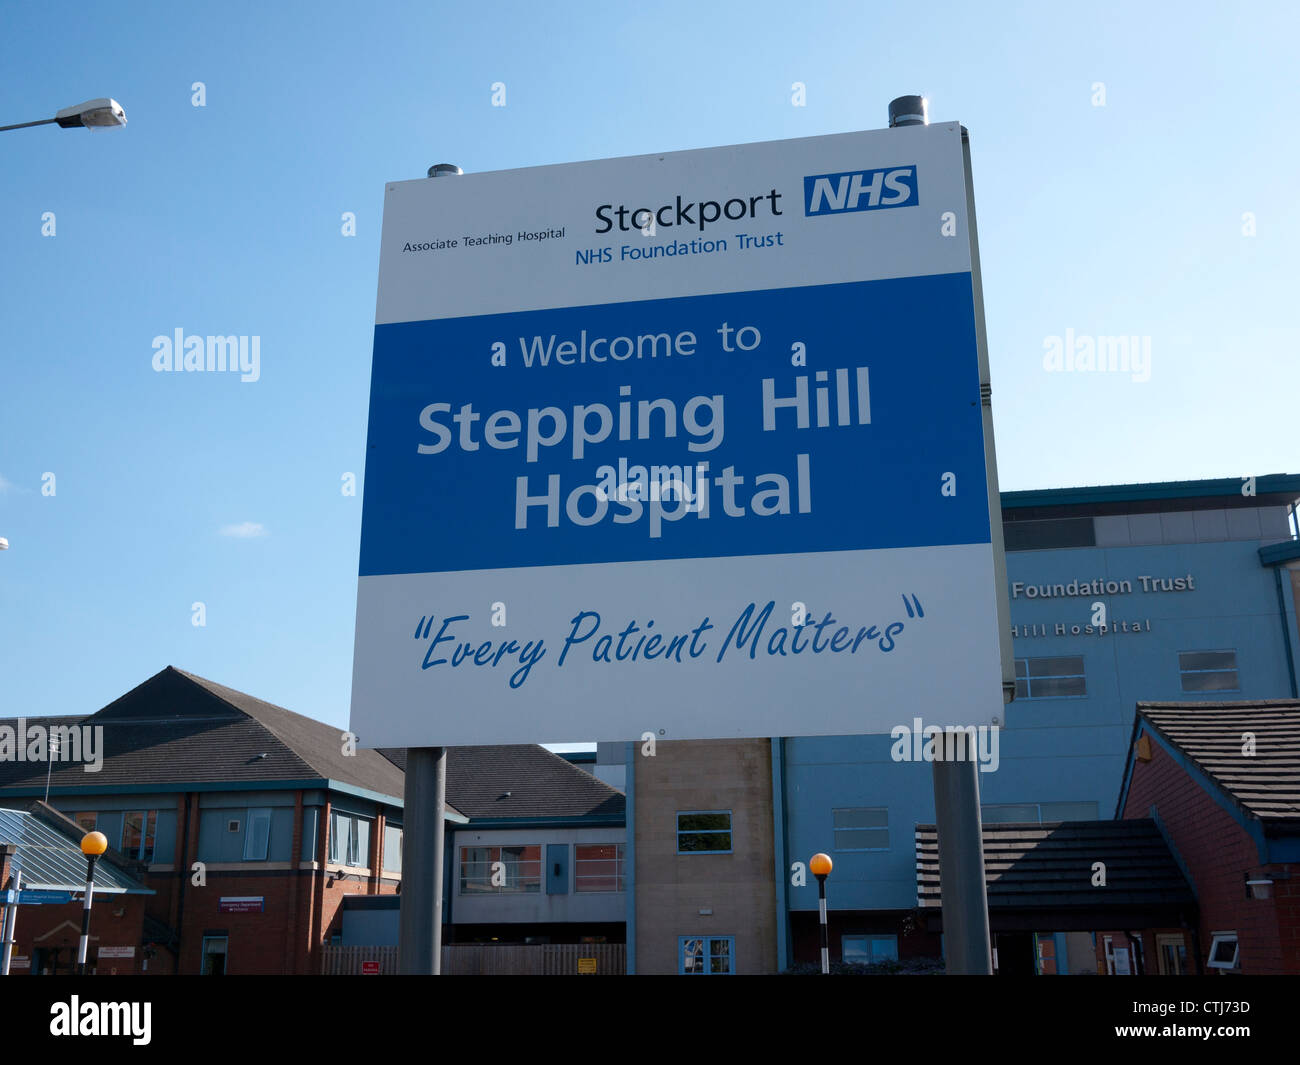 Stepping Hill NHS Hospital, Stockport, Greater Manchester, UK. - Stock Image